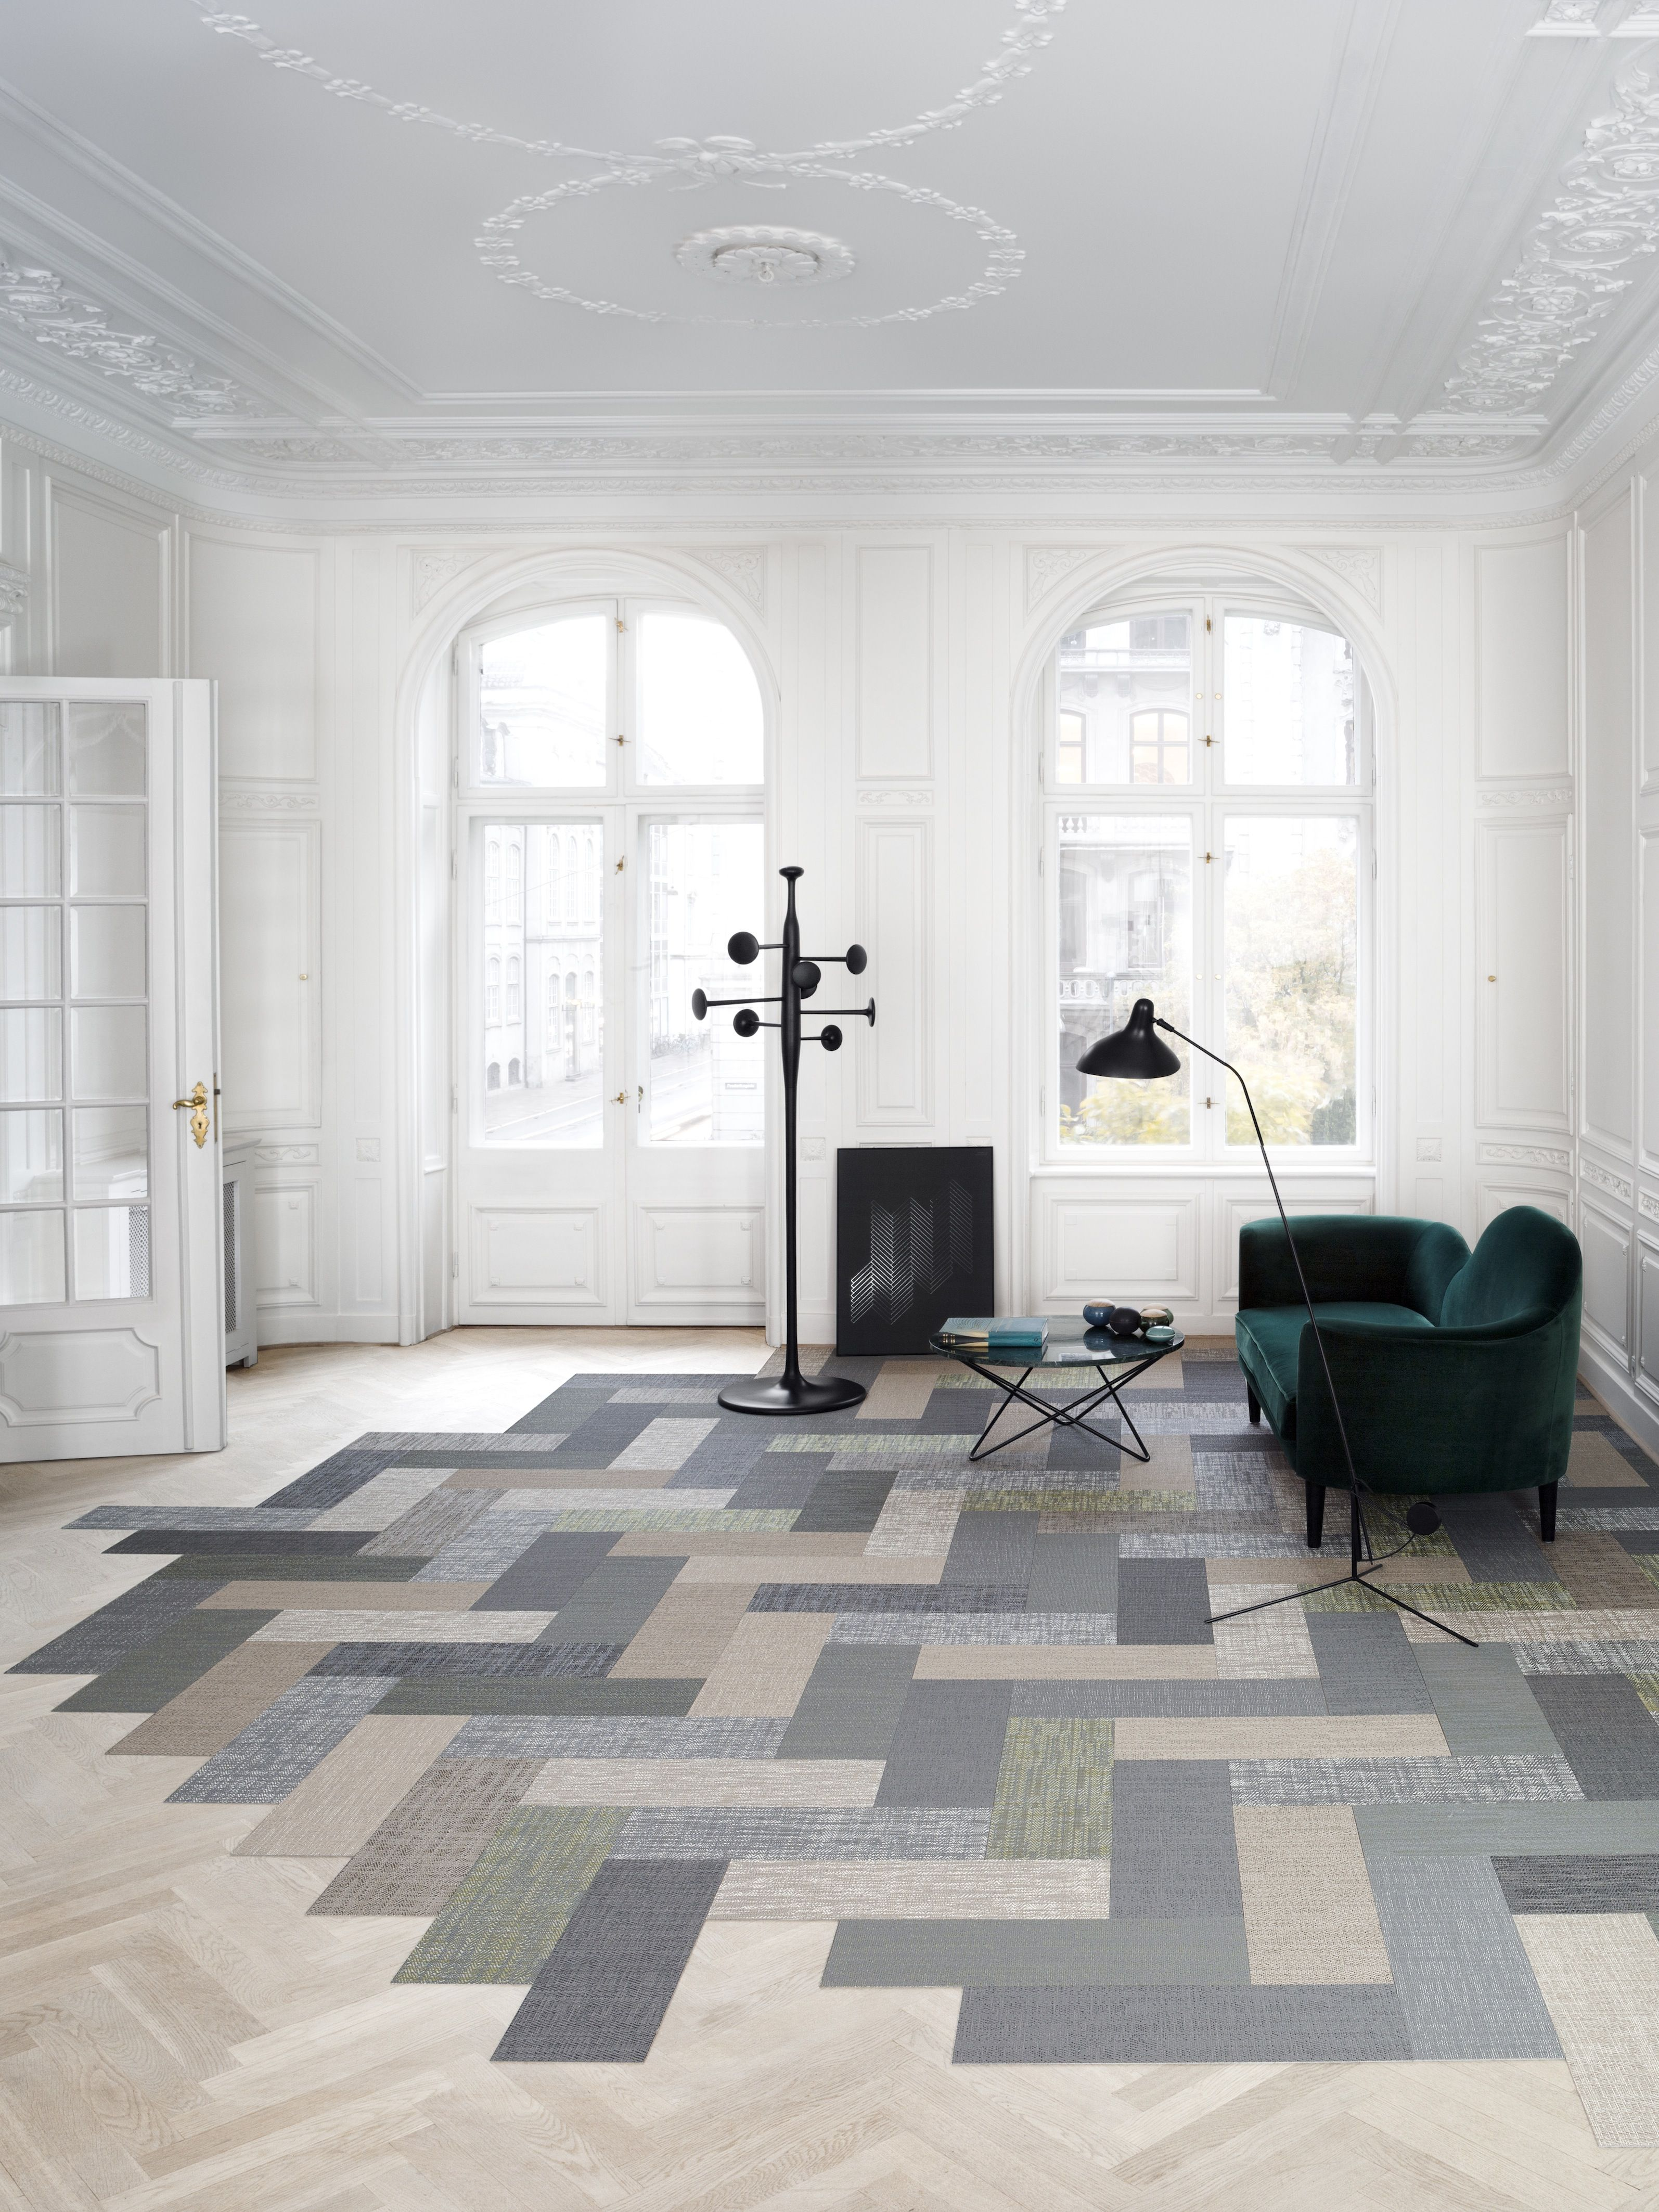 We Can Achive Something Similar By Laying The Full Tiles Colours Together Bolon Debuts Silence A Carpet Collection Influenced Nature Designboom